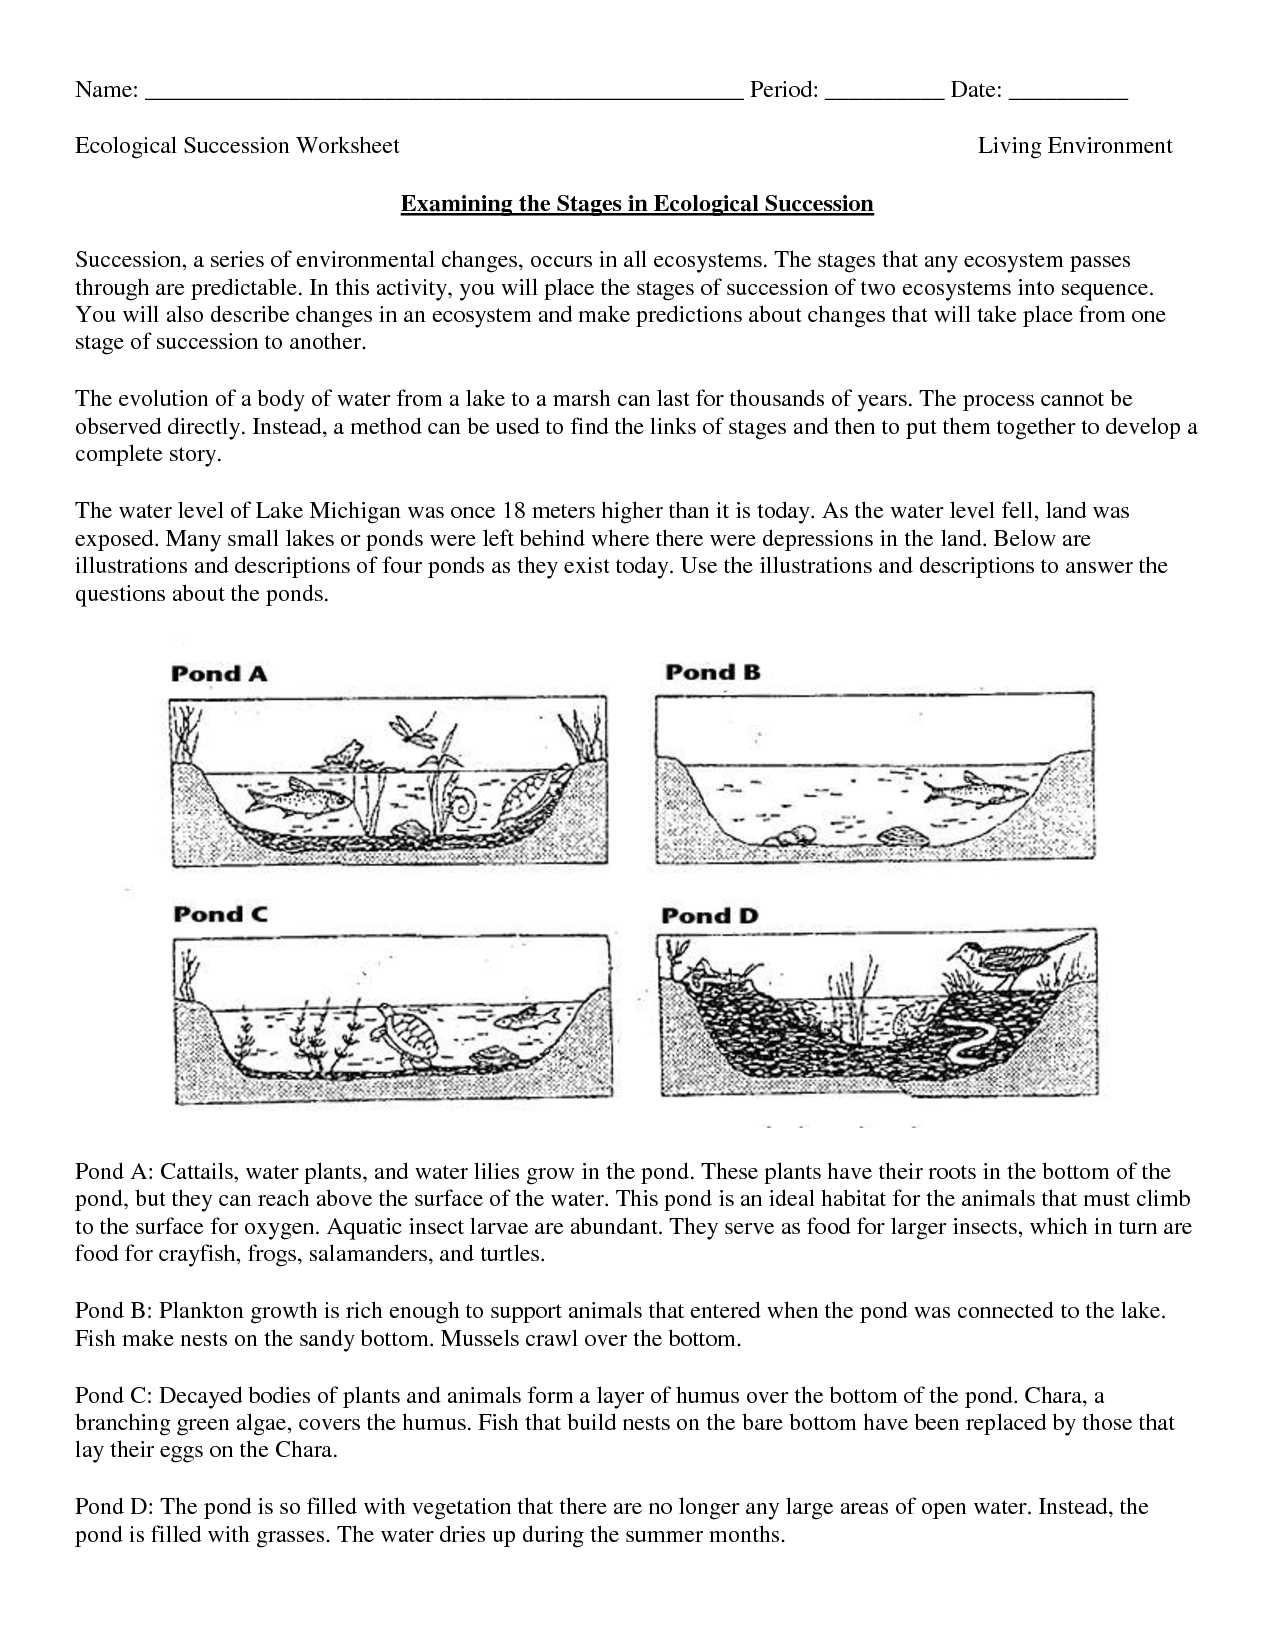 Science Worksheets Ecosystem | Biology Worksheet - Get Now Doc | Free Printable Biology Worksheets For High School